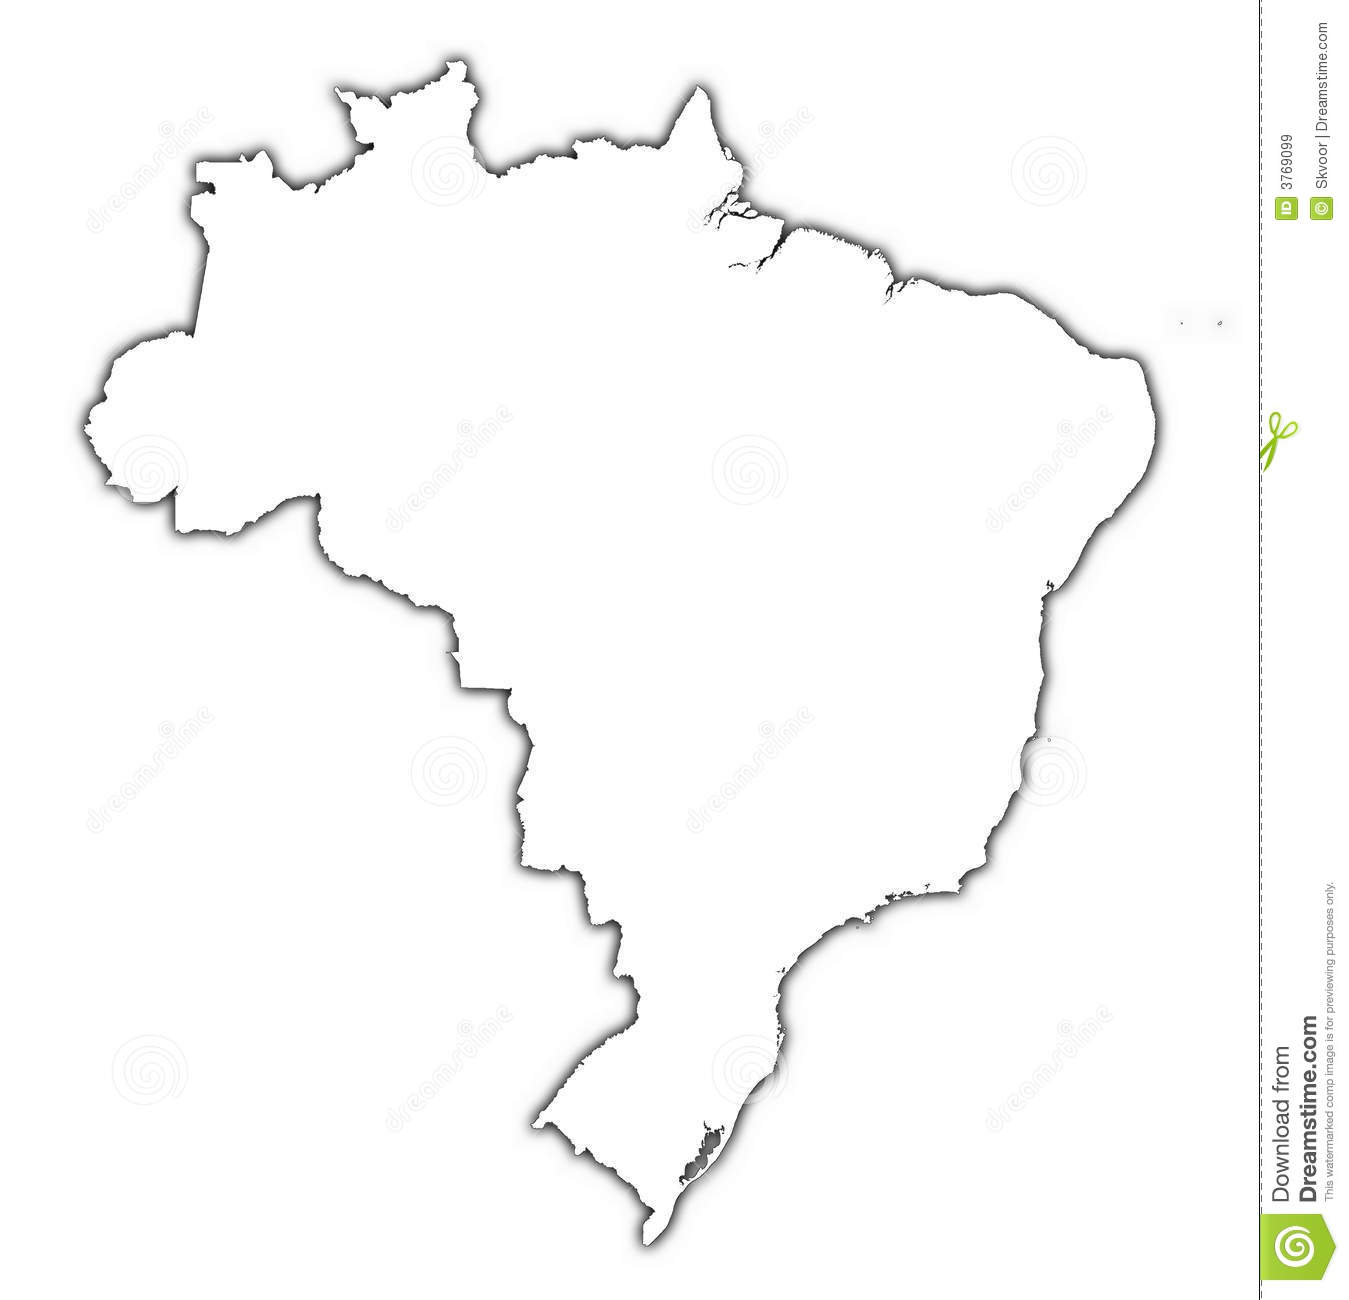 brazil outline map with shadow royalty free stock images image 3769099 treasure map border vector treasure map vector image